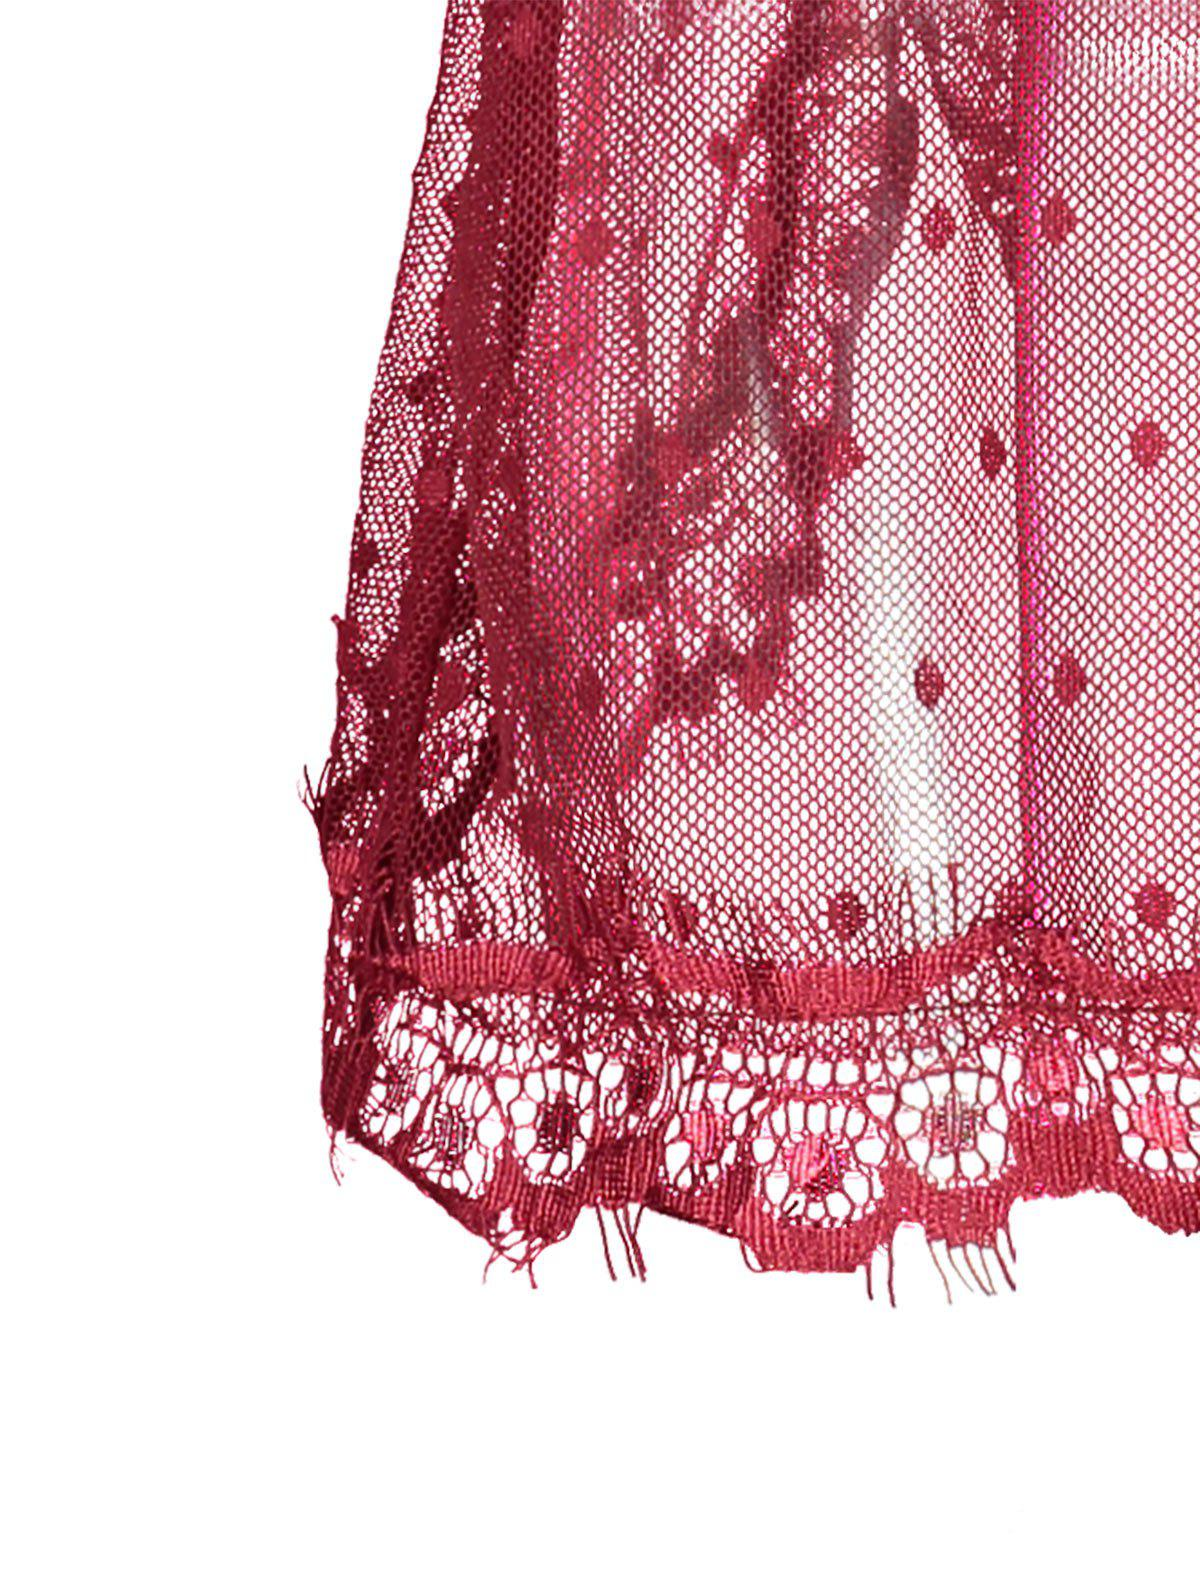 Robe Lingerie en Dentelle Transparente à Dos Fendu - Rouge vineux 2XL